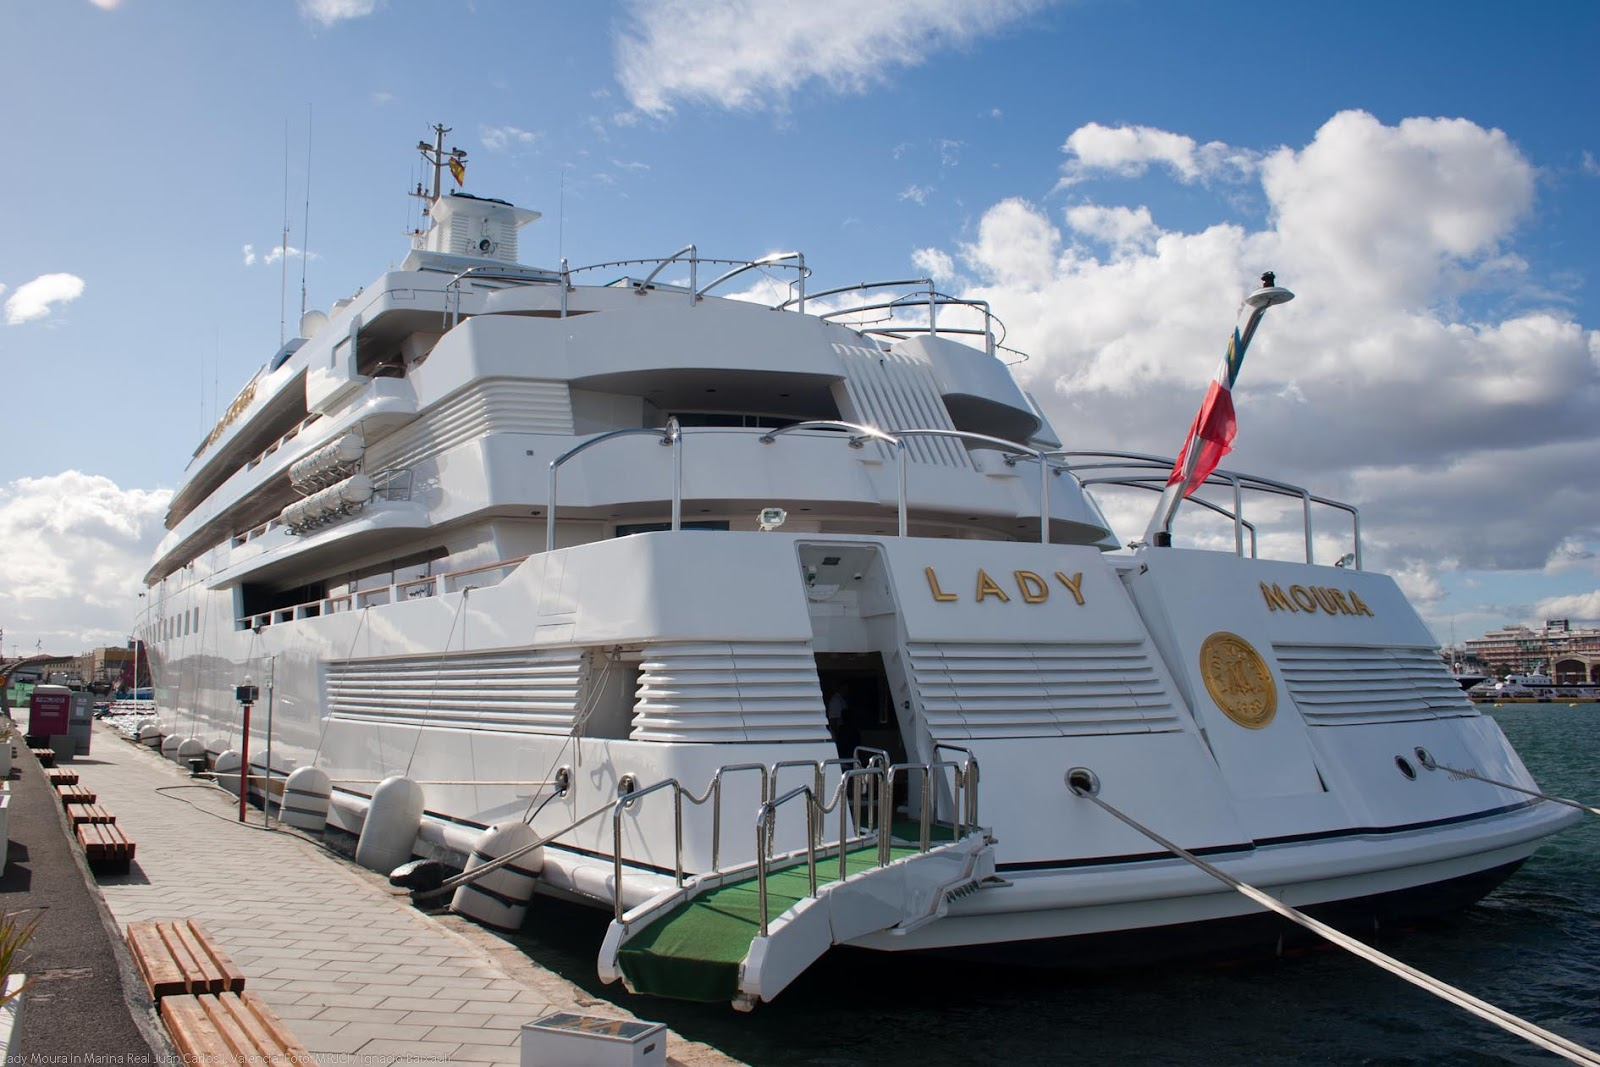 Lady Moura Superyacht Photos Marine Vessel Traffic